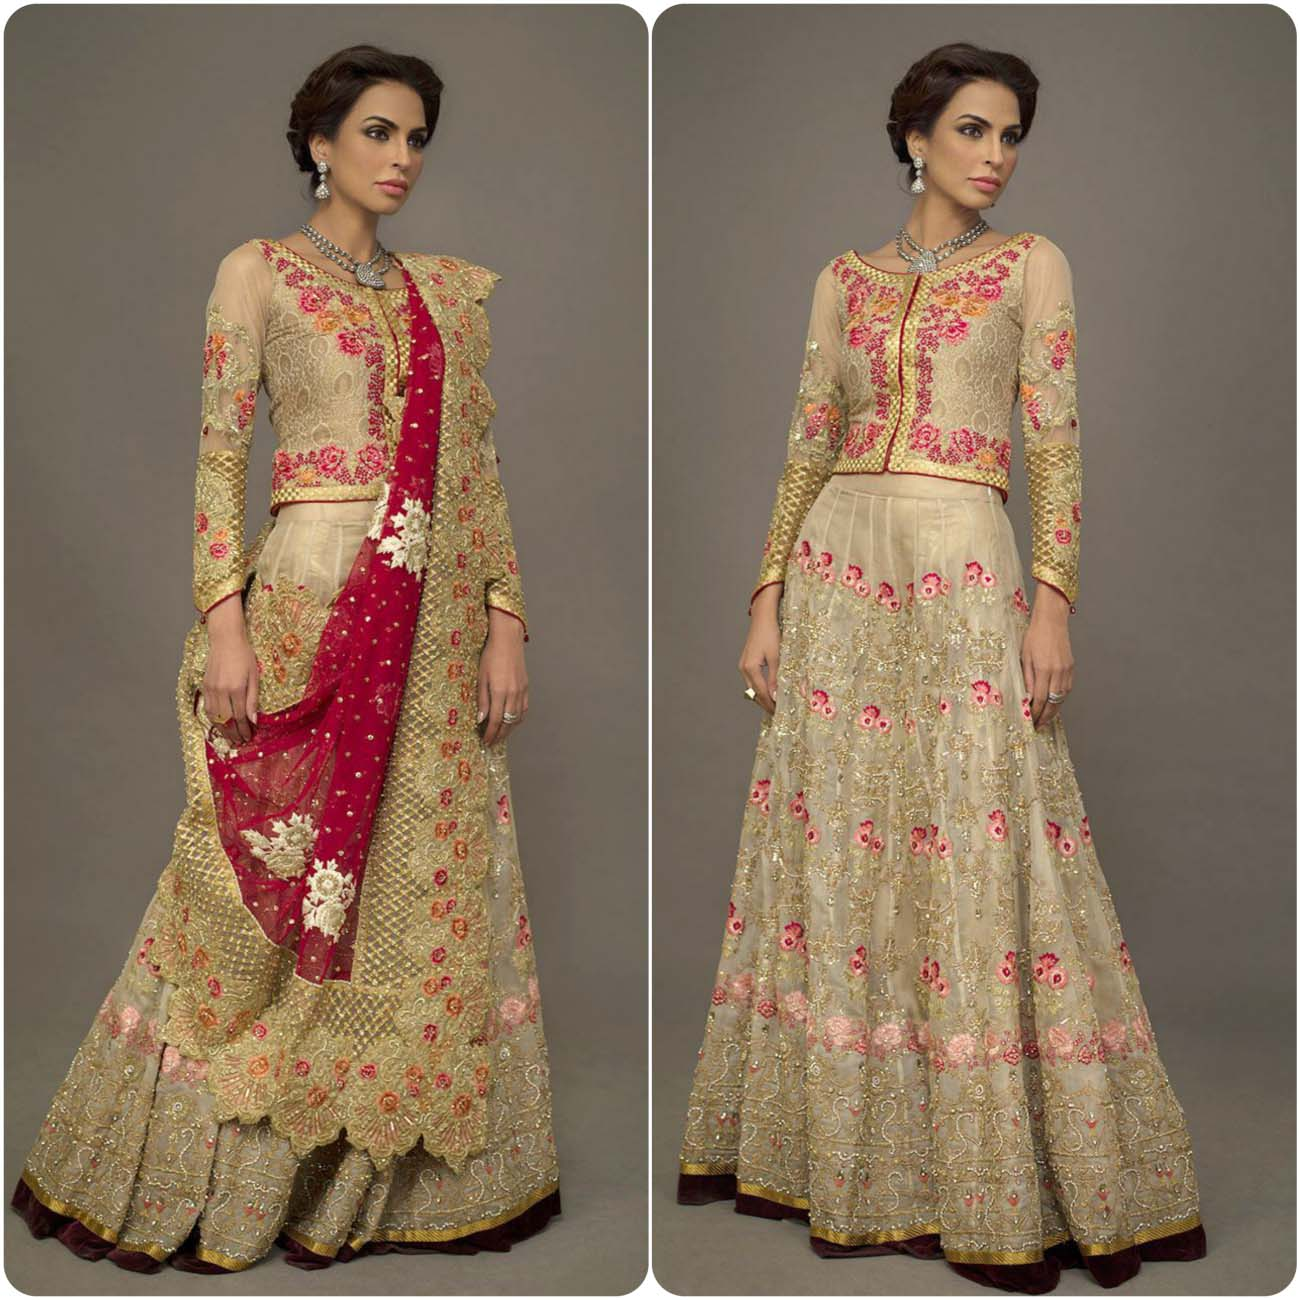 deepak-perwani-top-10-best-popular-pakistani-bridal-dresses-designers-2